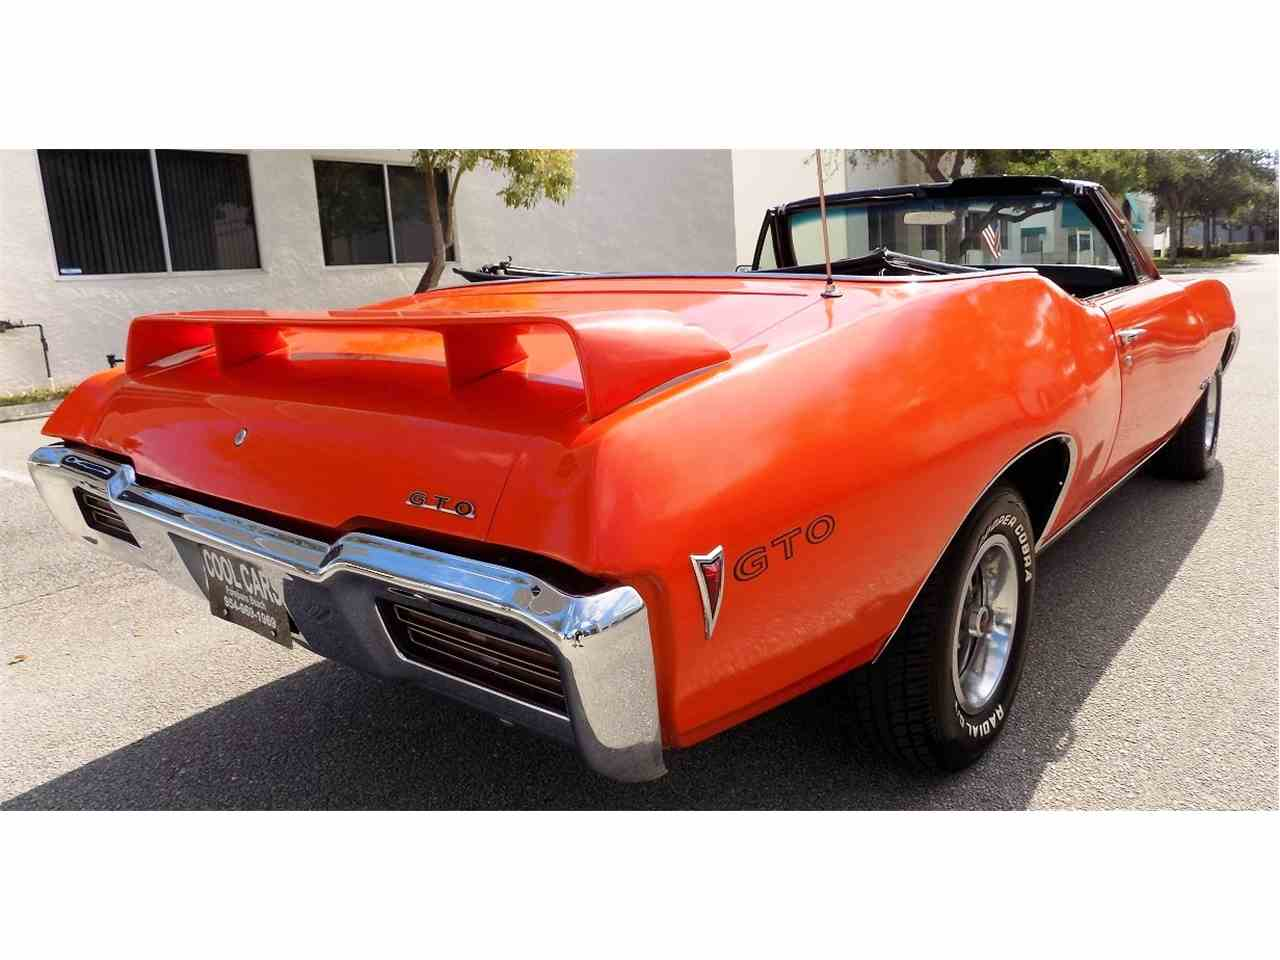 Large Picture of '68 Pontiac GTO located in POMPANO BEACH Florida - $26,995.00 - JRS0